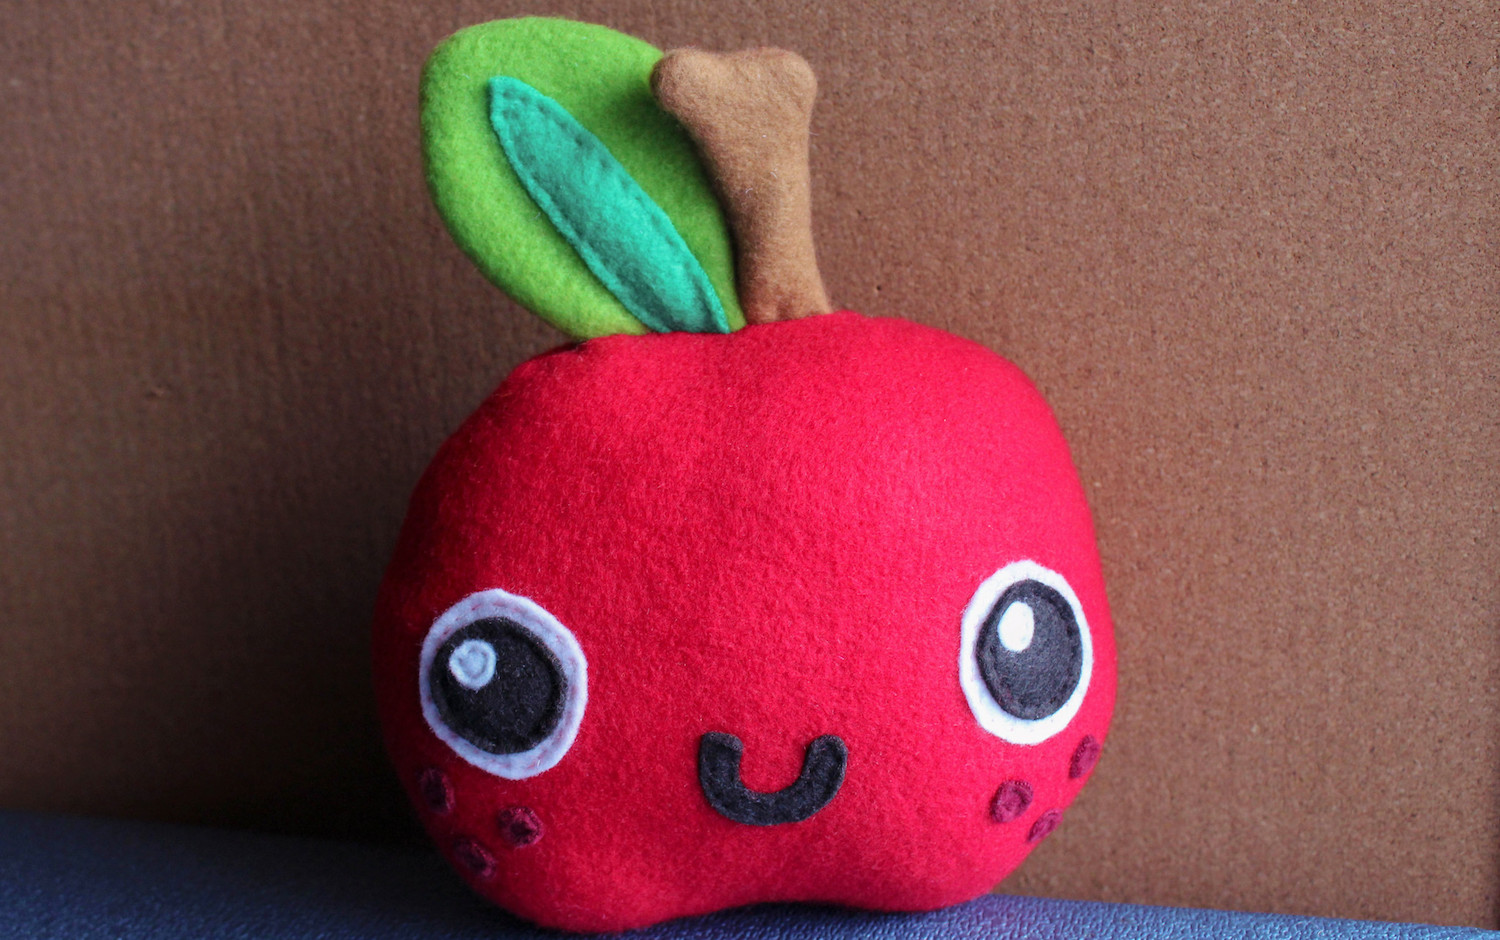 Apple sued toy manufacturer